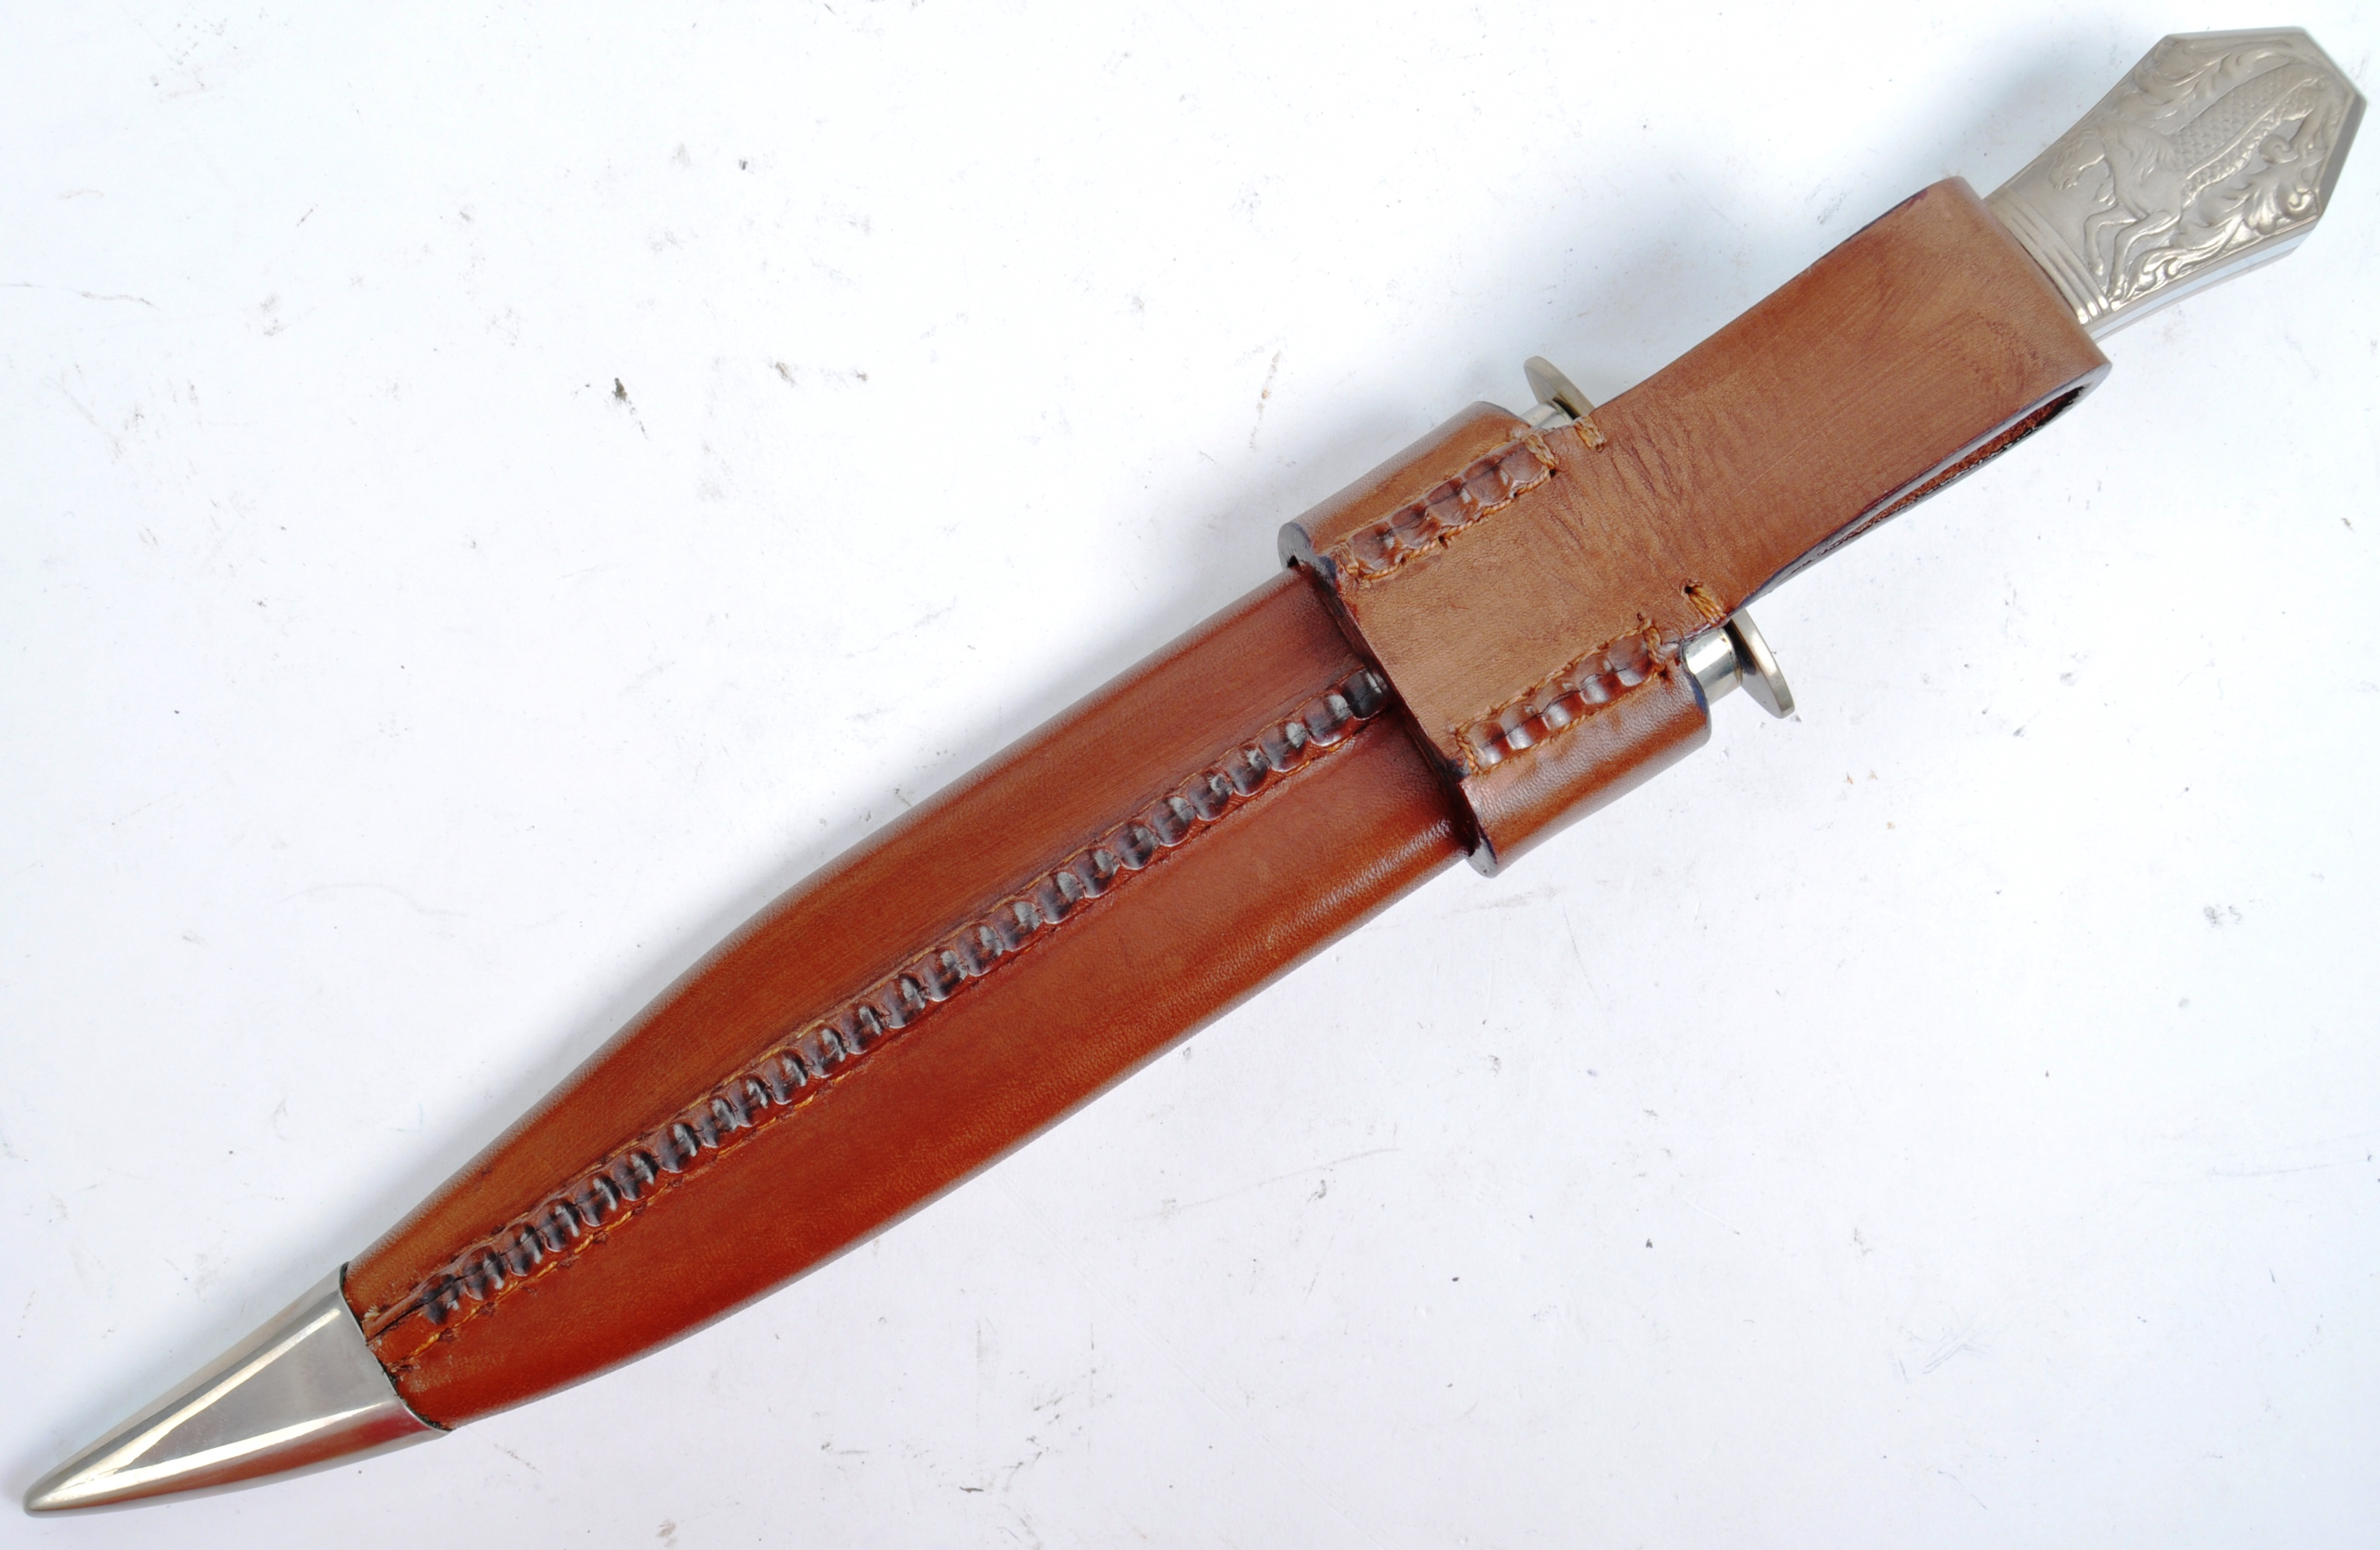 20TH CENTURY PAUL CHEN / HANWEI MADE BOWIE KNIFE - Image 11 of 12